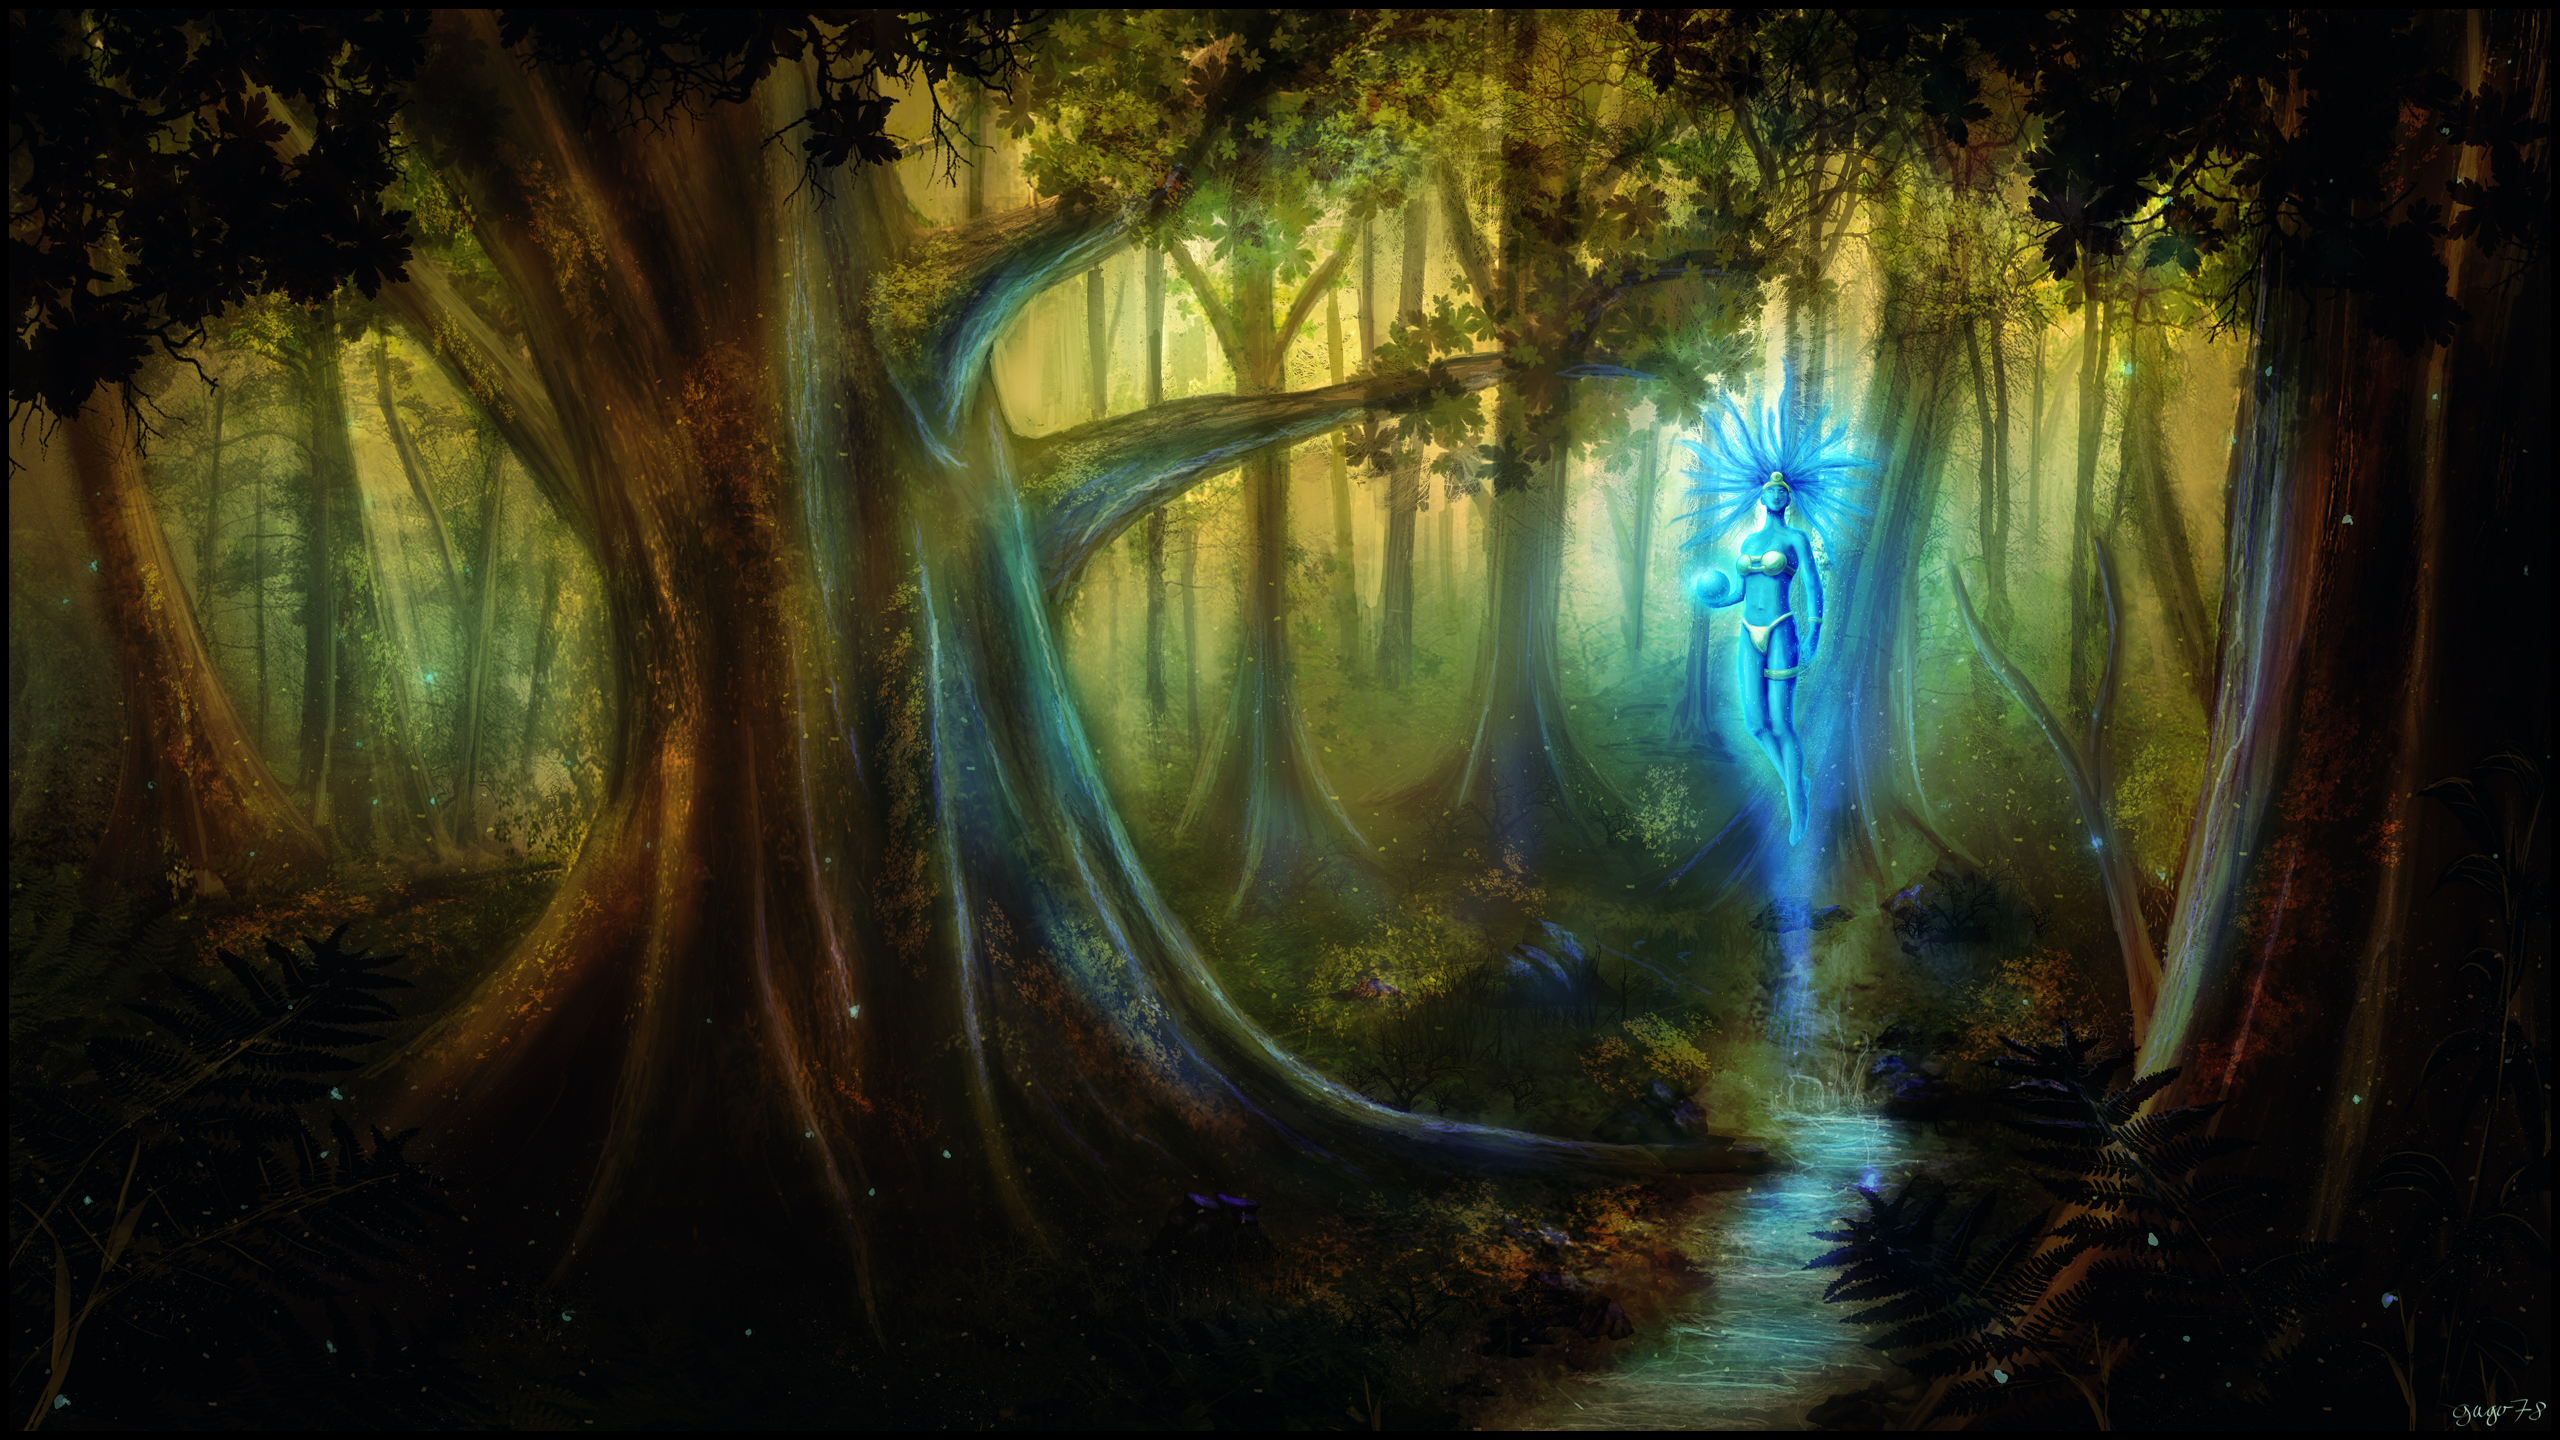 https://art.ngfiles.com/images/292000/292133_gugo78_magical-forest.jpg?f1394215729